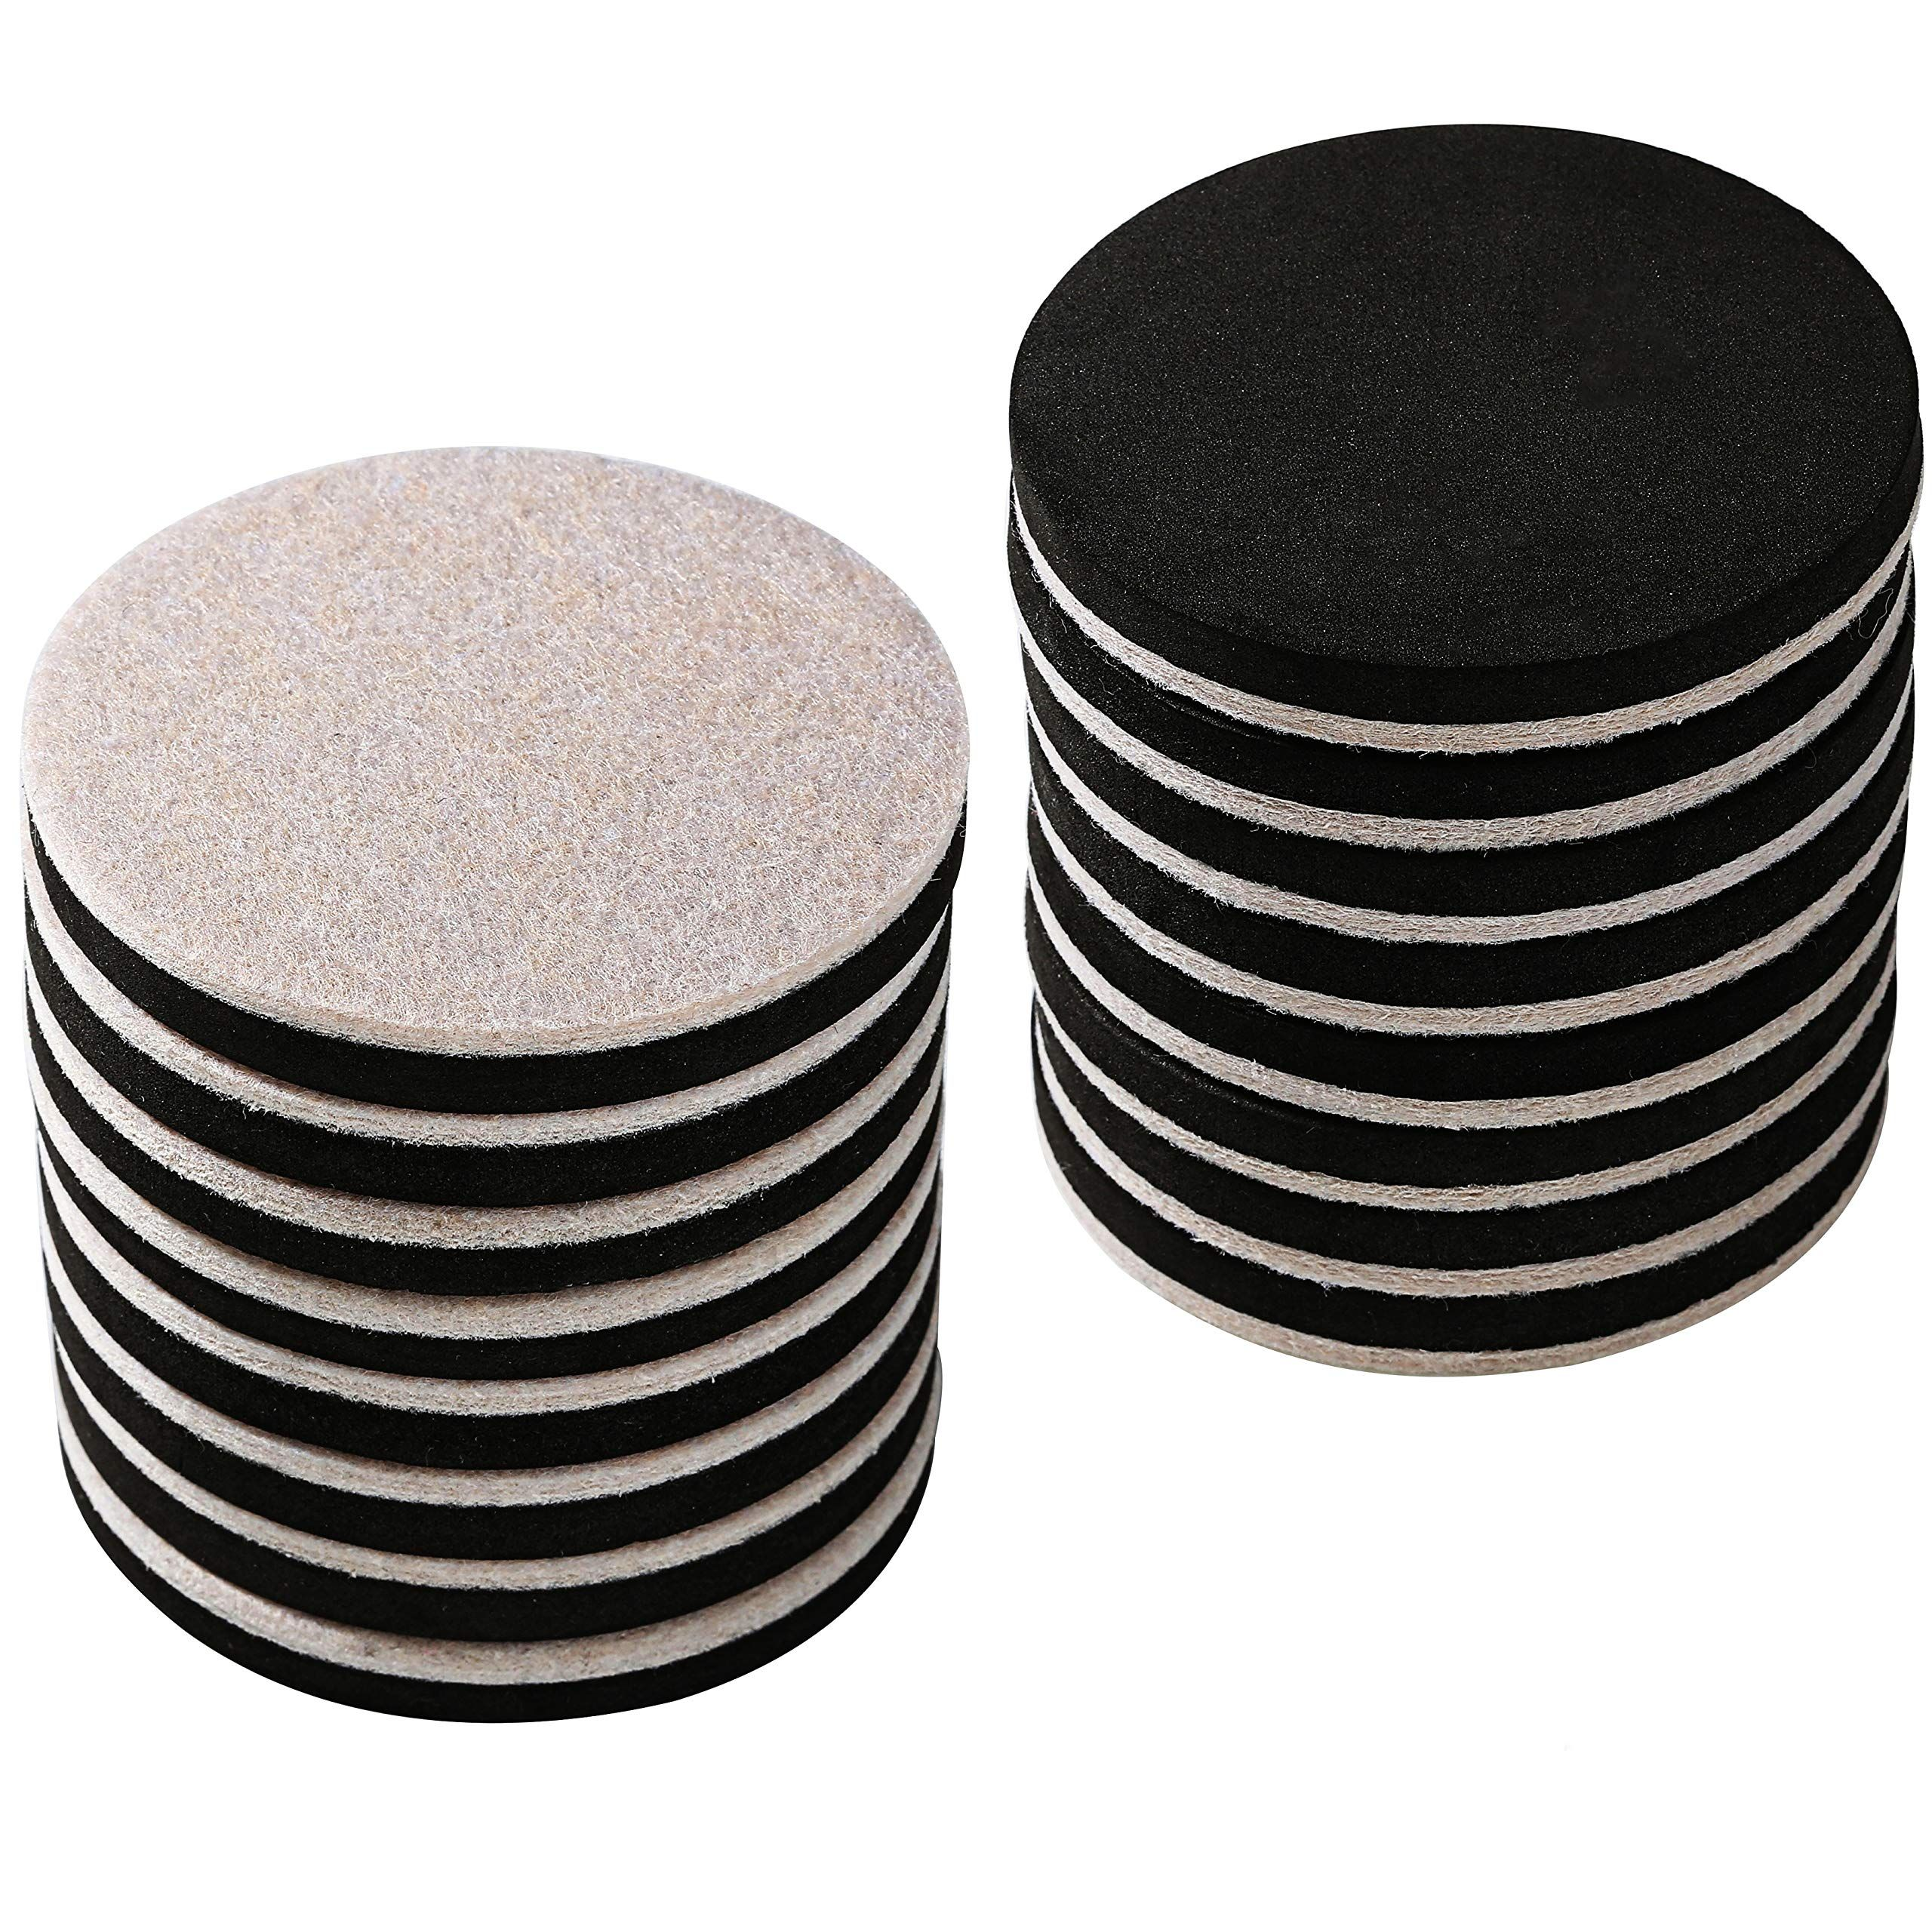 16 Pack 3 5 In Premium Heavy Furniture Movers For Wood Floor Felt Furniture Slider In A Reusable Tube 3 Furniture Sliders Furniture Moving Pads Furniture Pads